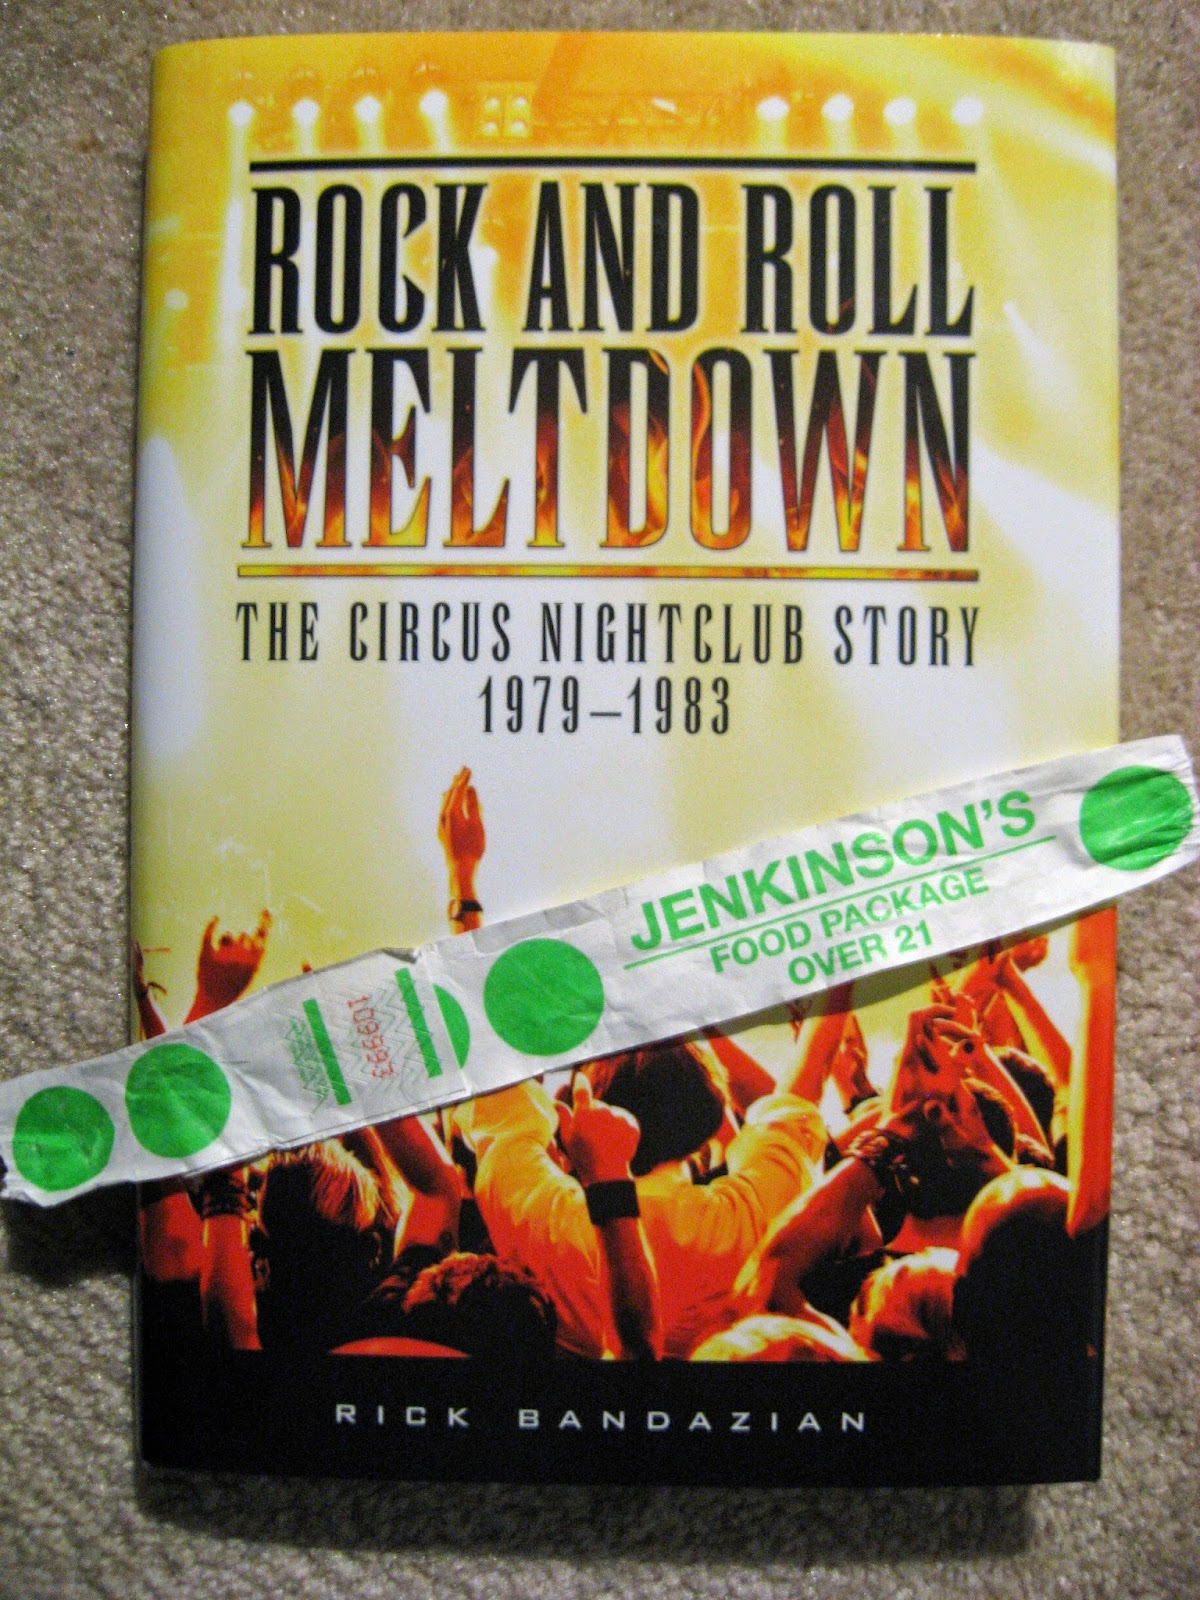 My copy of the book along with my wristband from the club from the event